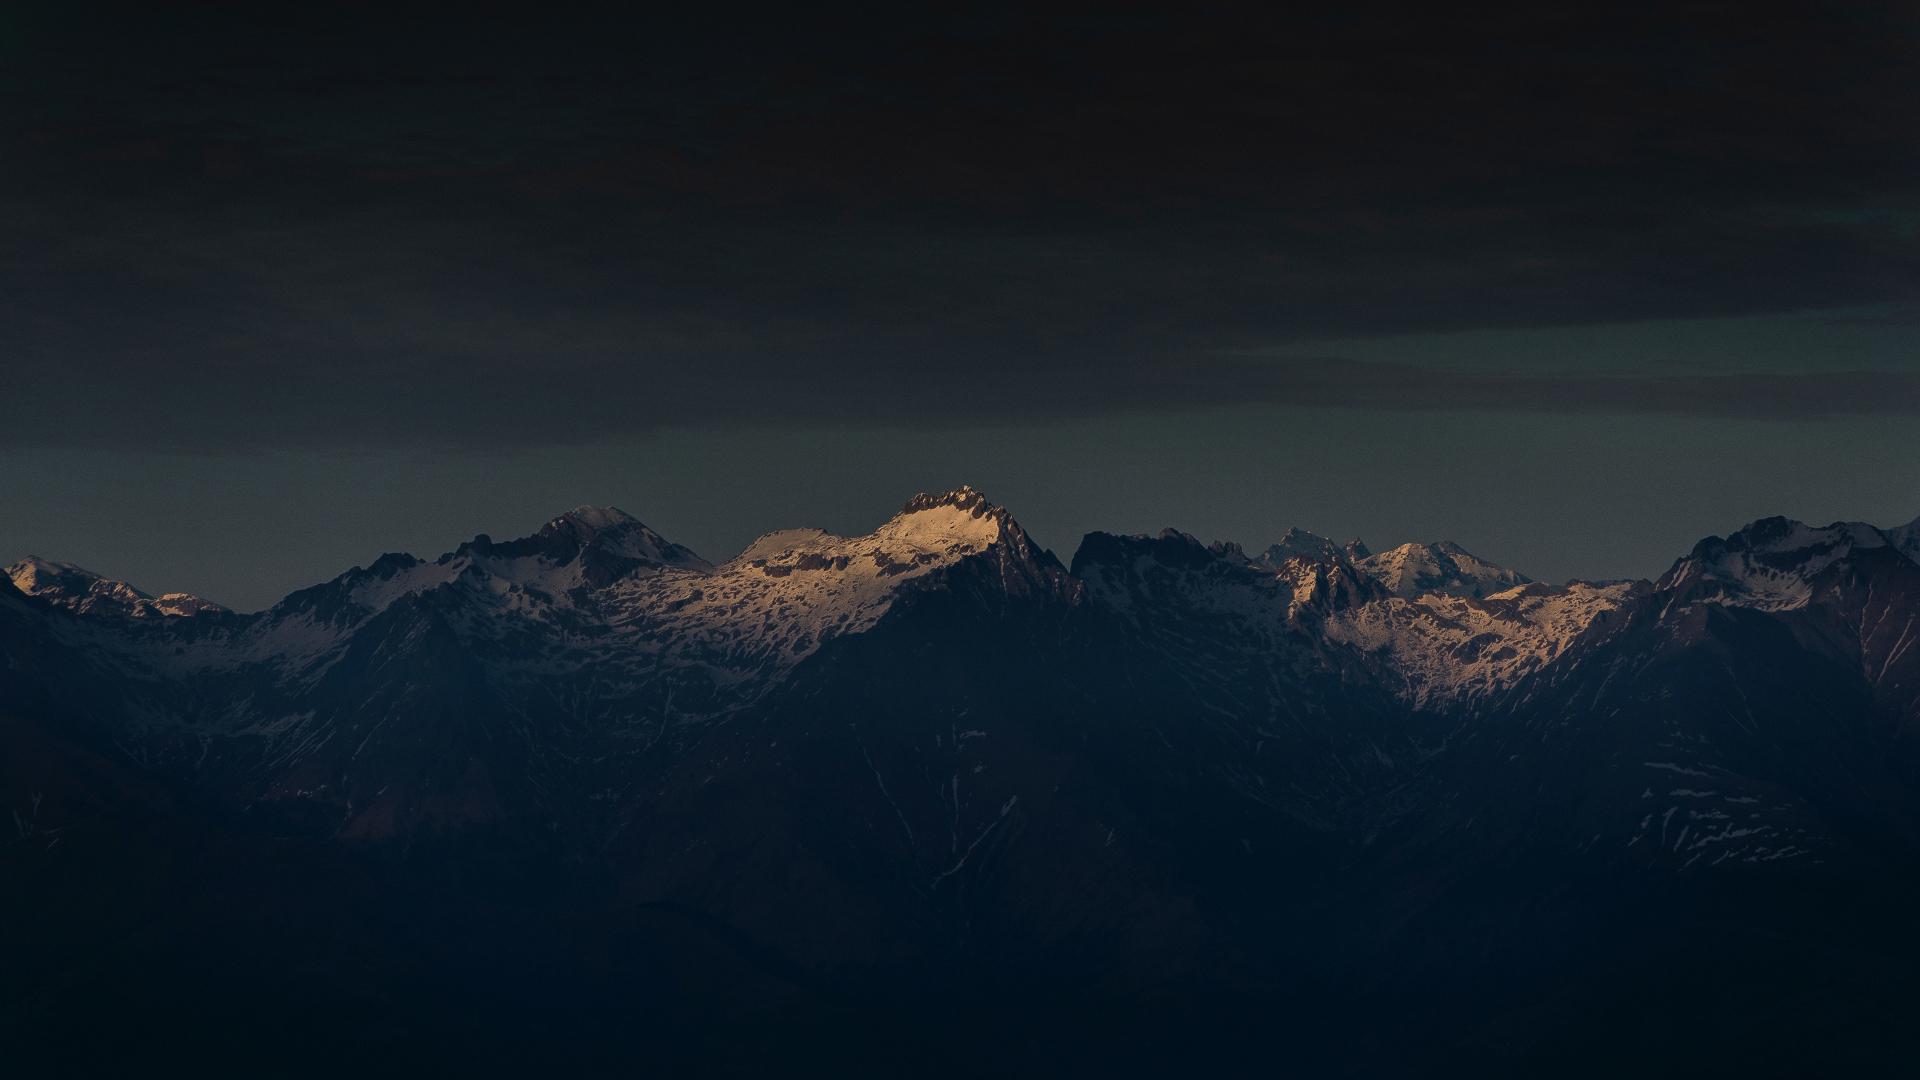 1920x1080 Clean Night Sky And Mountains Peak 1080p Laptop